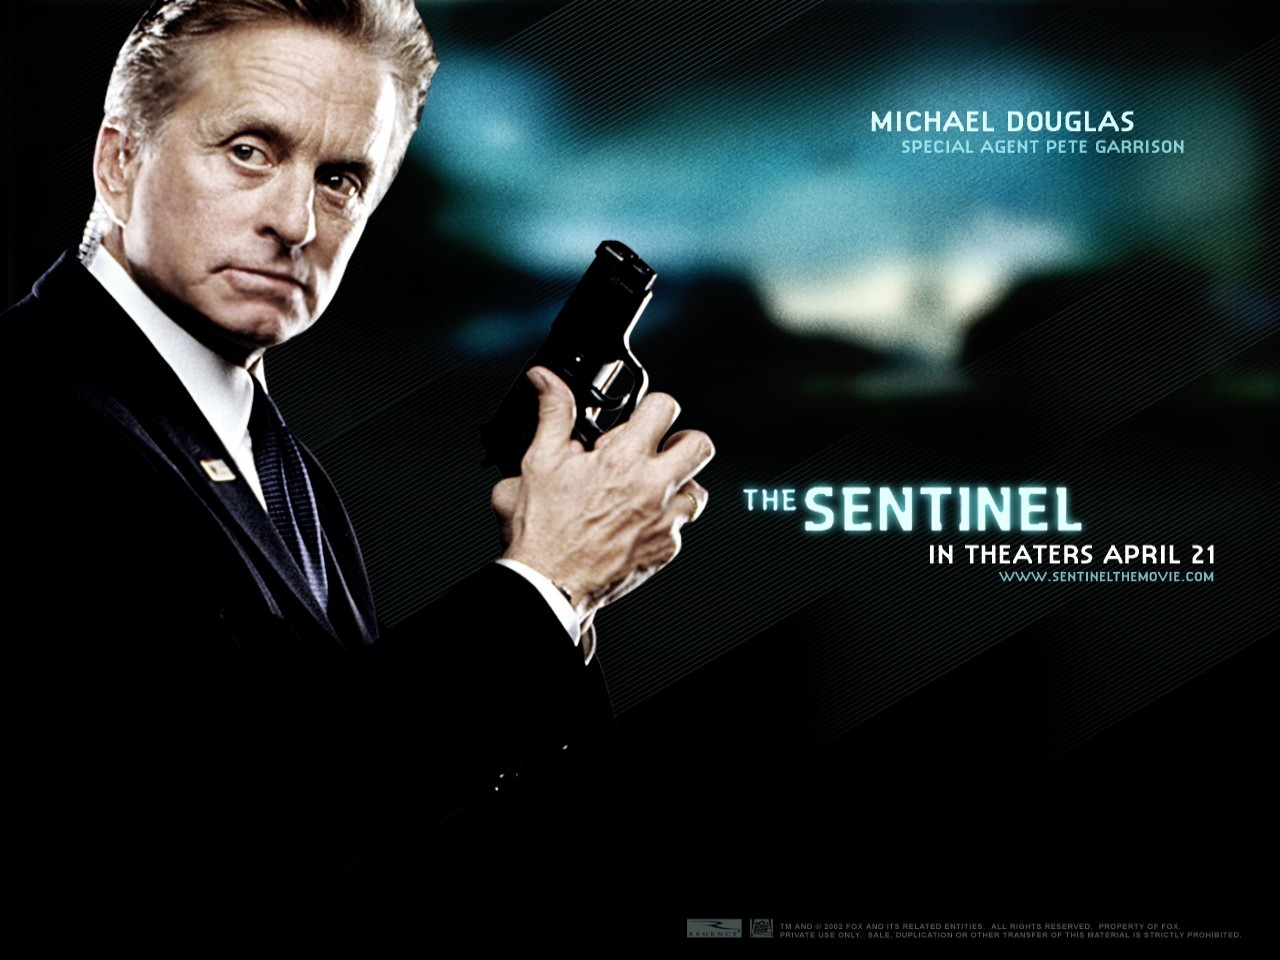 Wallpaper del film The Sentinel con Michale Douglas